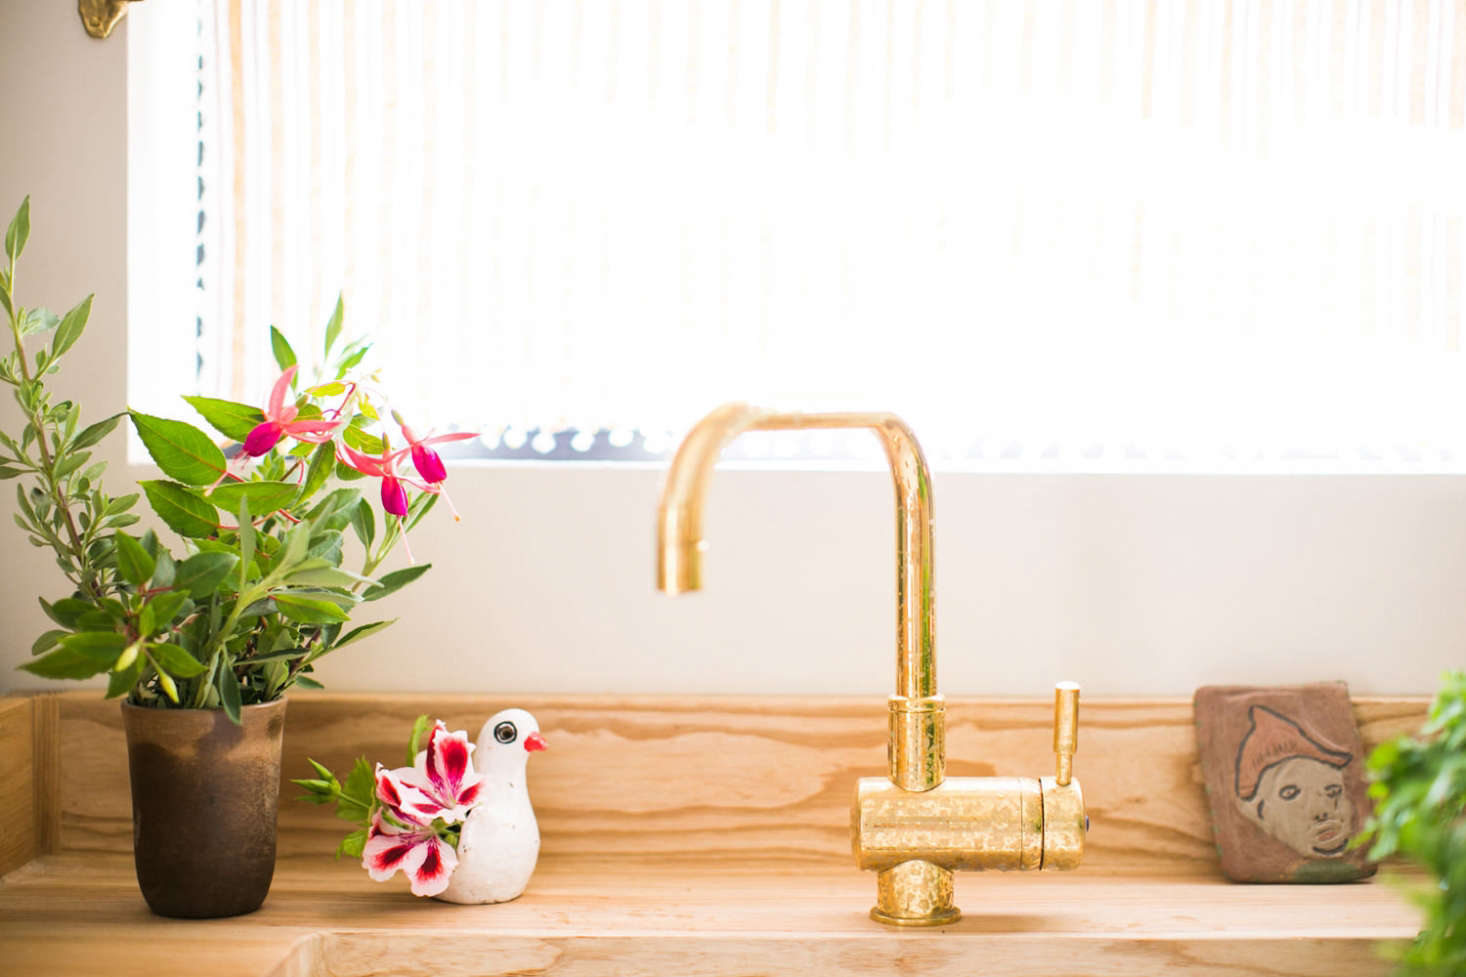 The couple chose brass and bronze fittings throughout the room for a warm glow. The countertop is fabricated from ash wood, sealed with linseed oil.